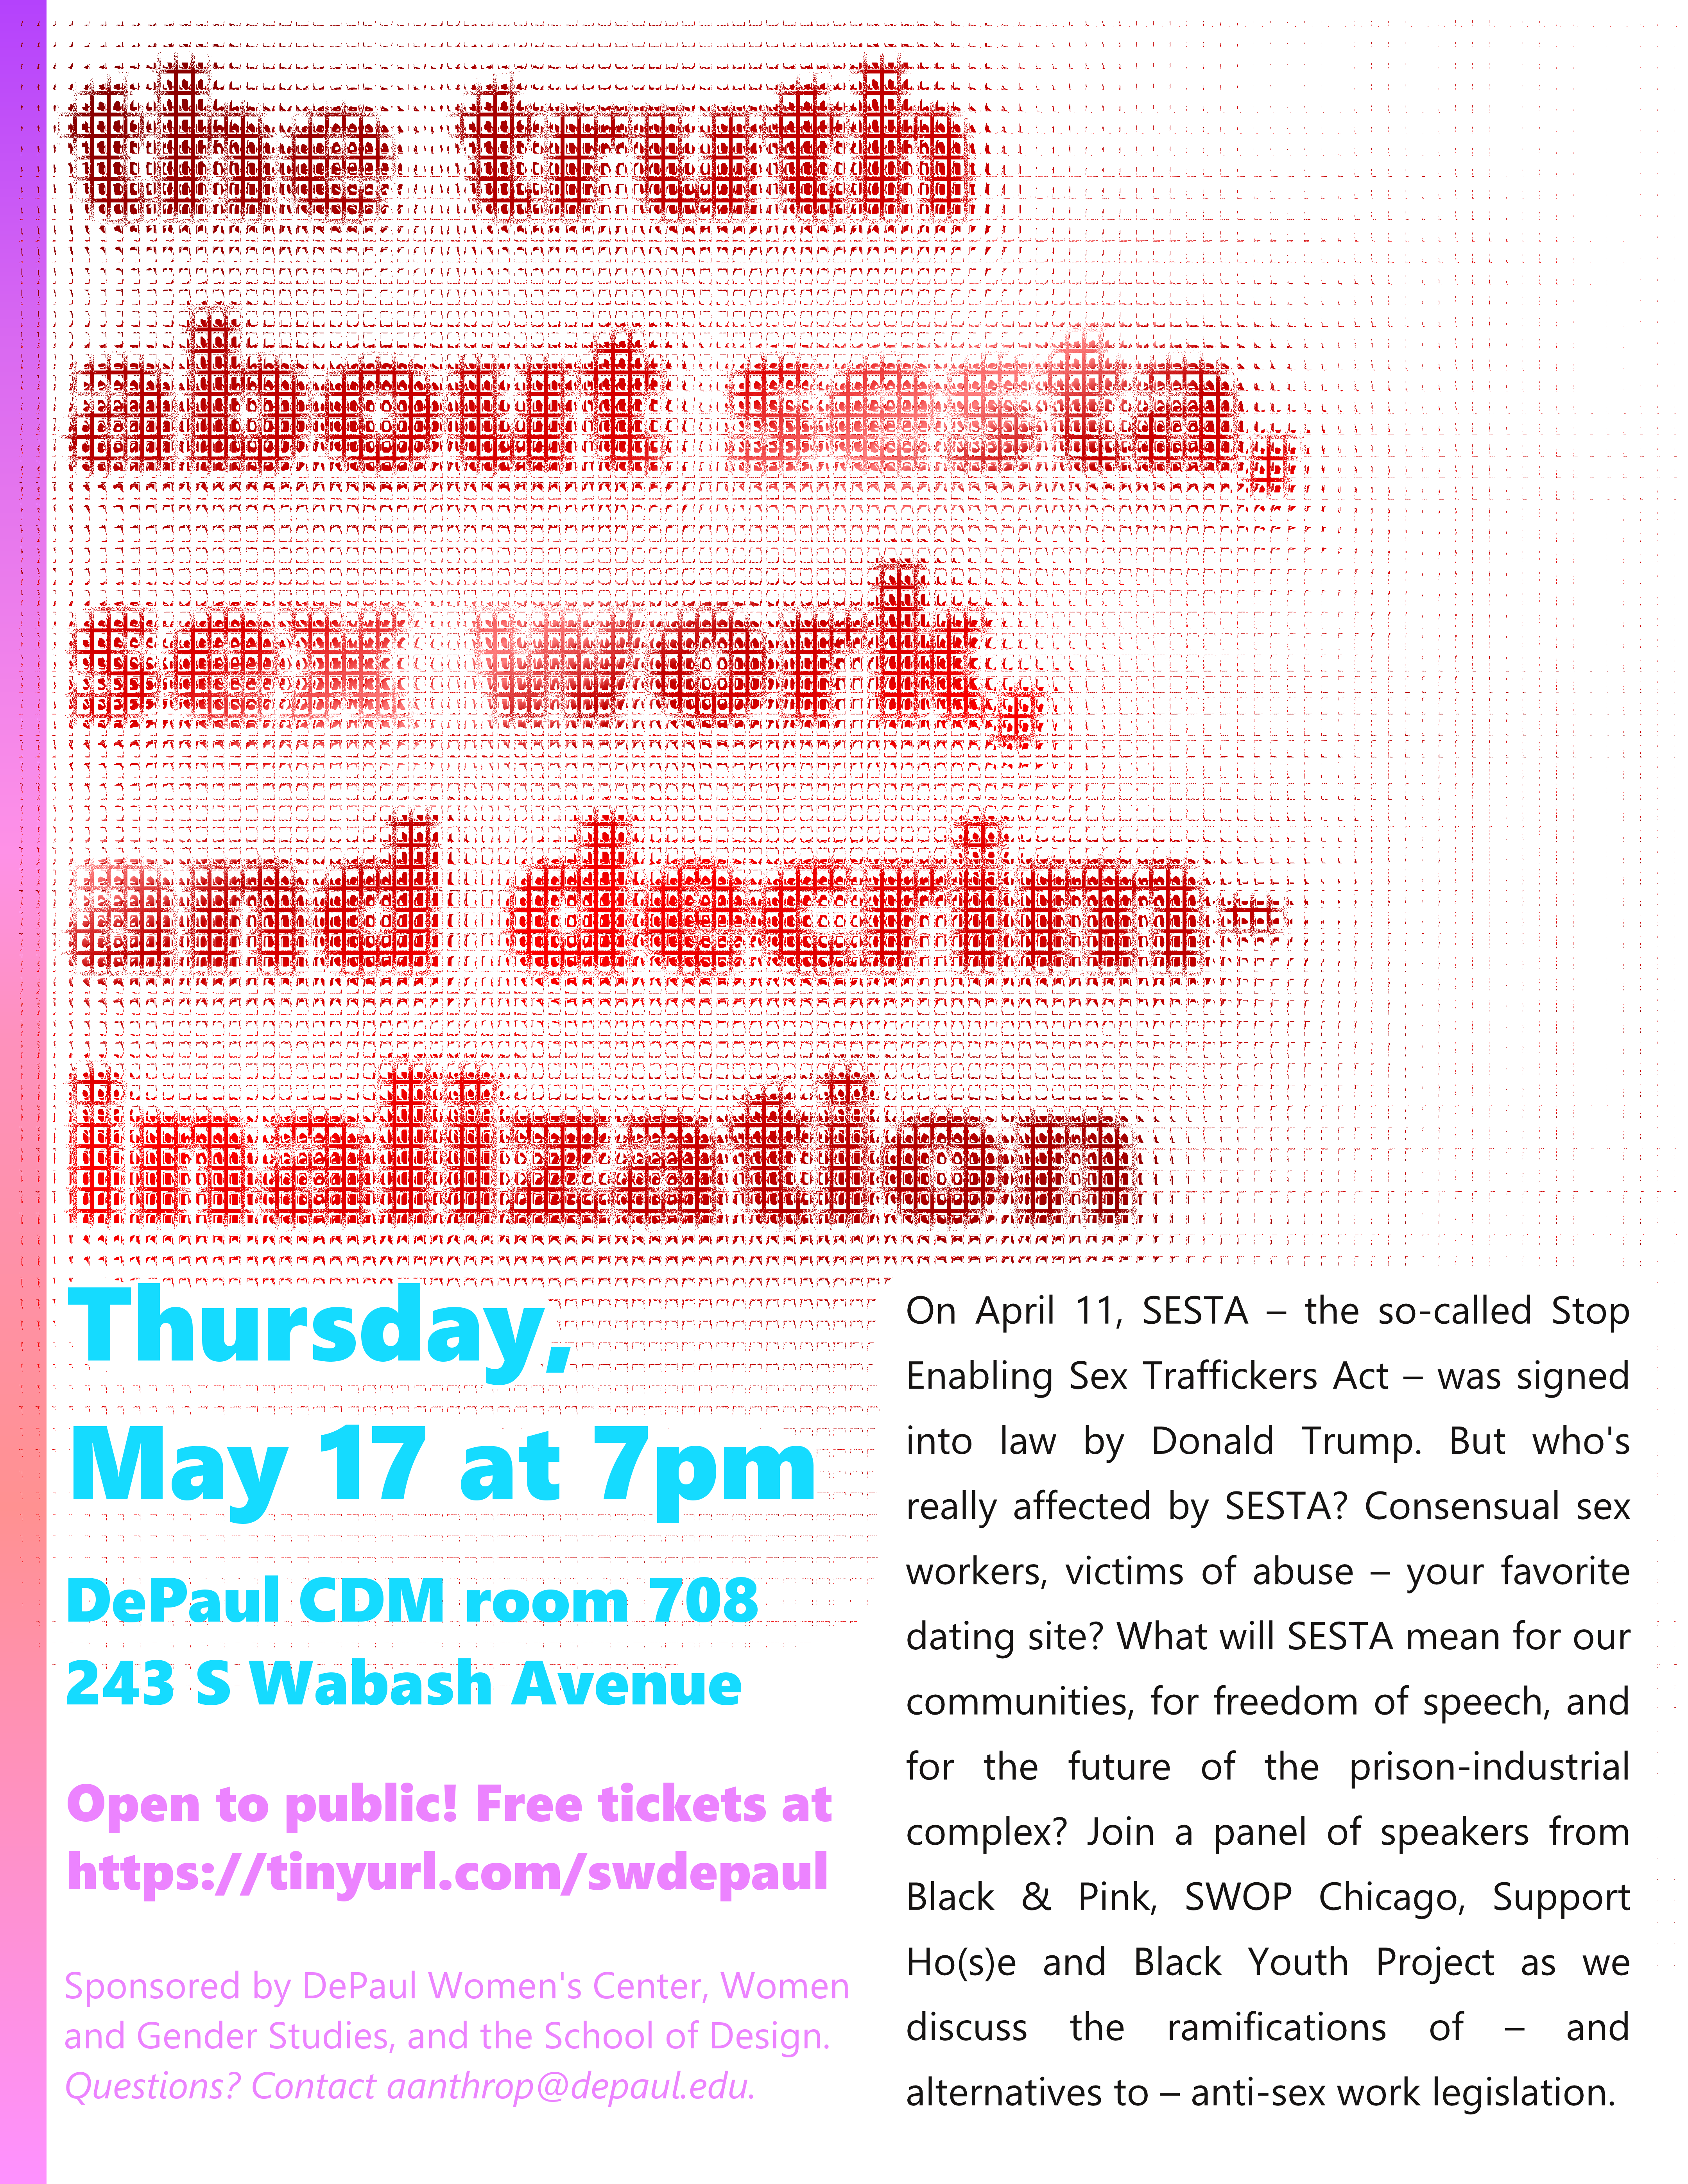 The Truth About SESTA